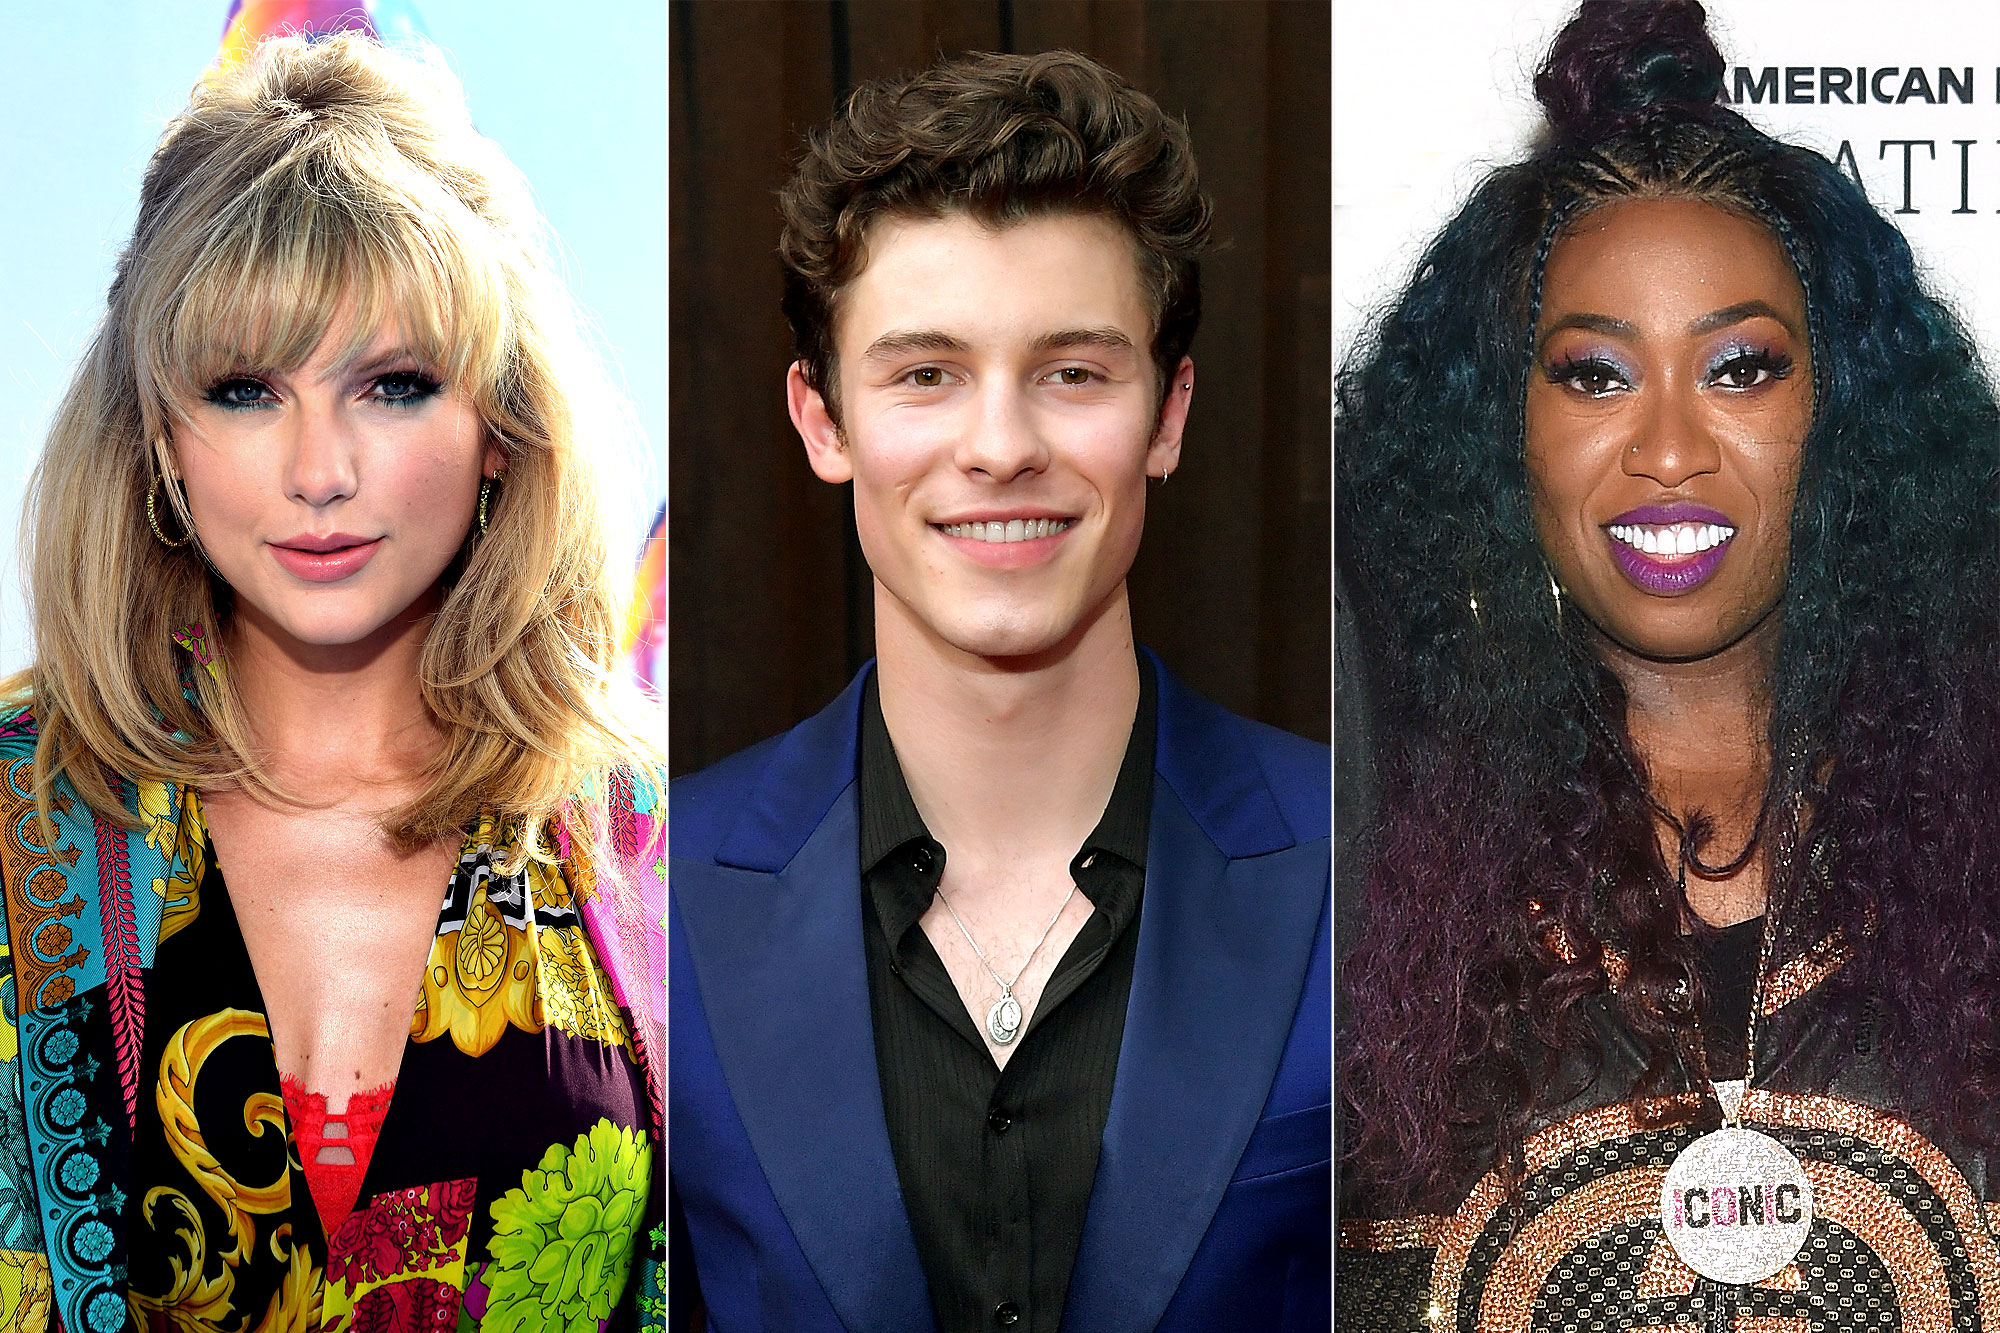 Taylor Swift, Shawn Mendes and Missy Elliott